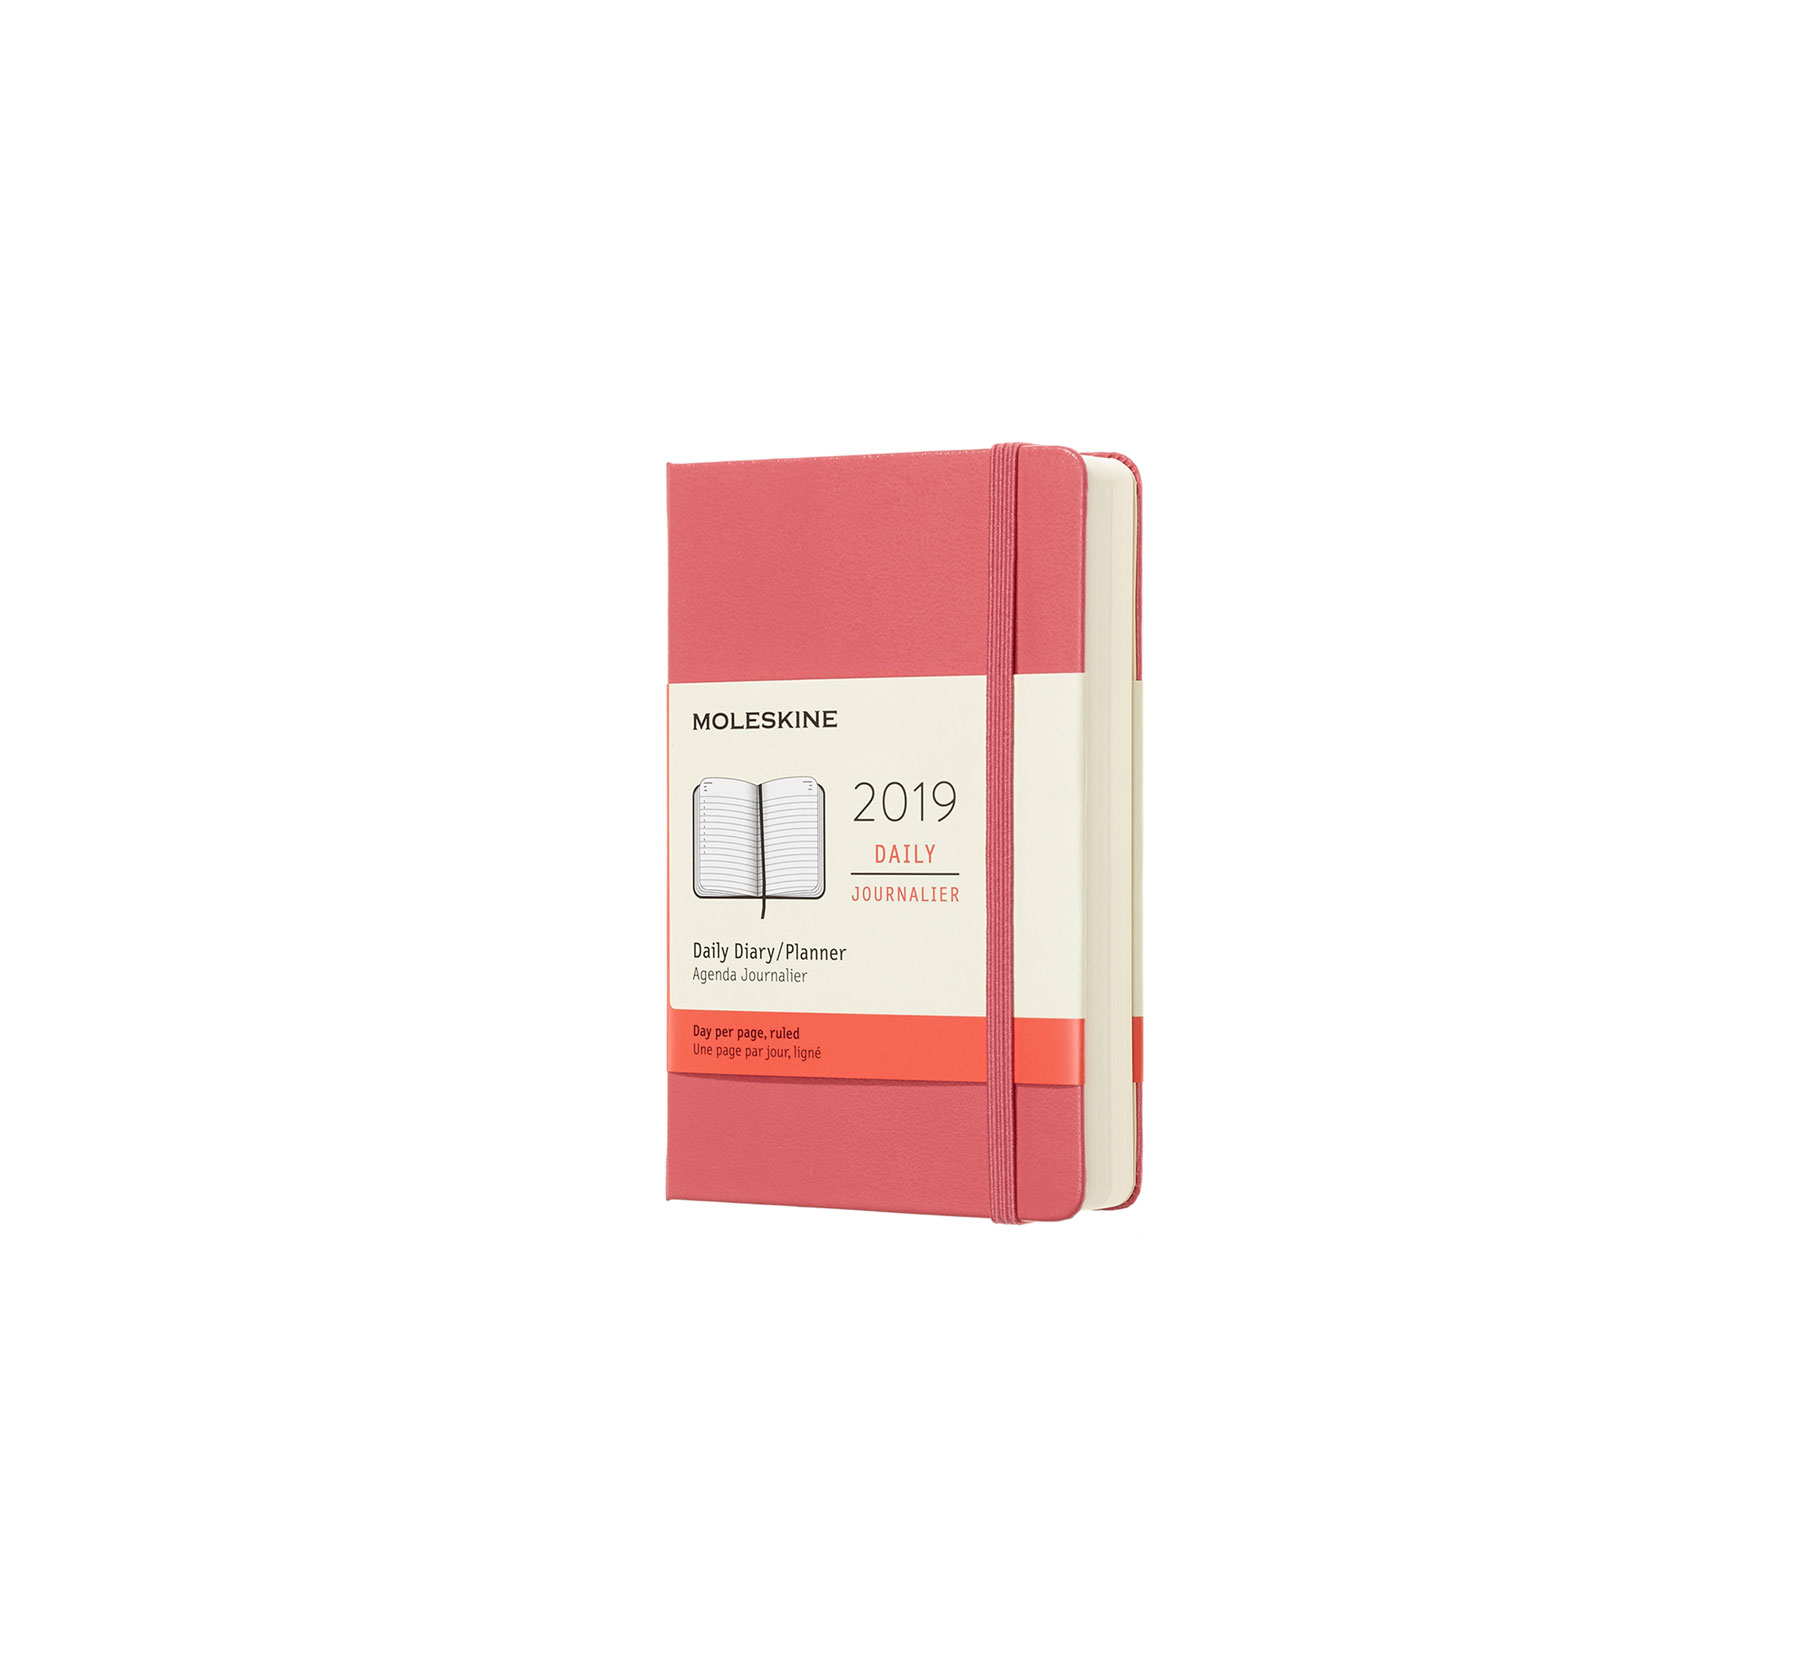 2019 Daily, Weekly, and Monthly Planners Moleskine 12-Month Daily Planner in Pink